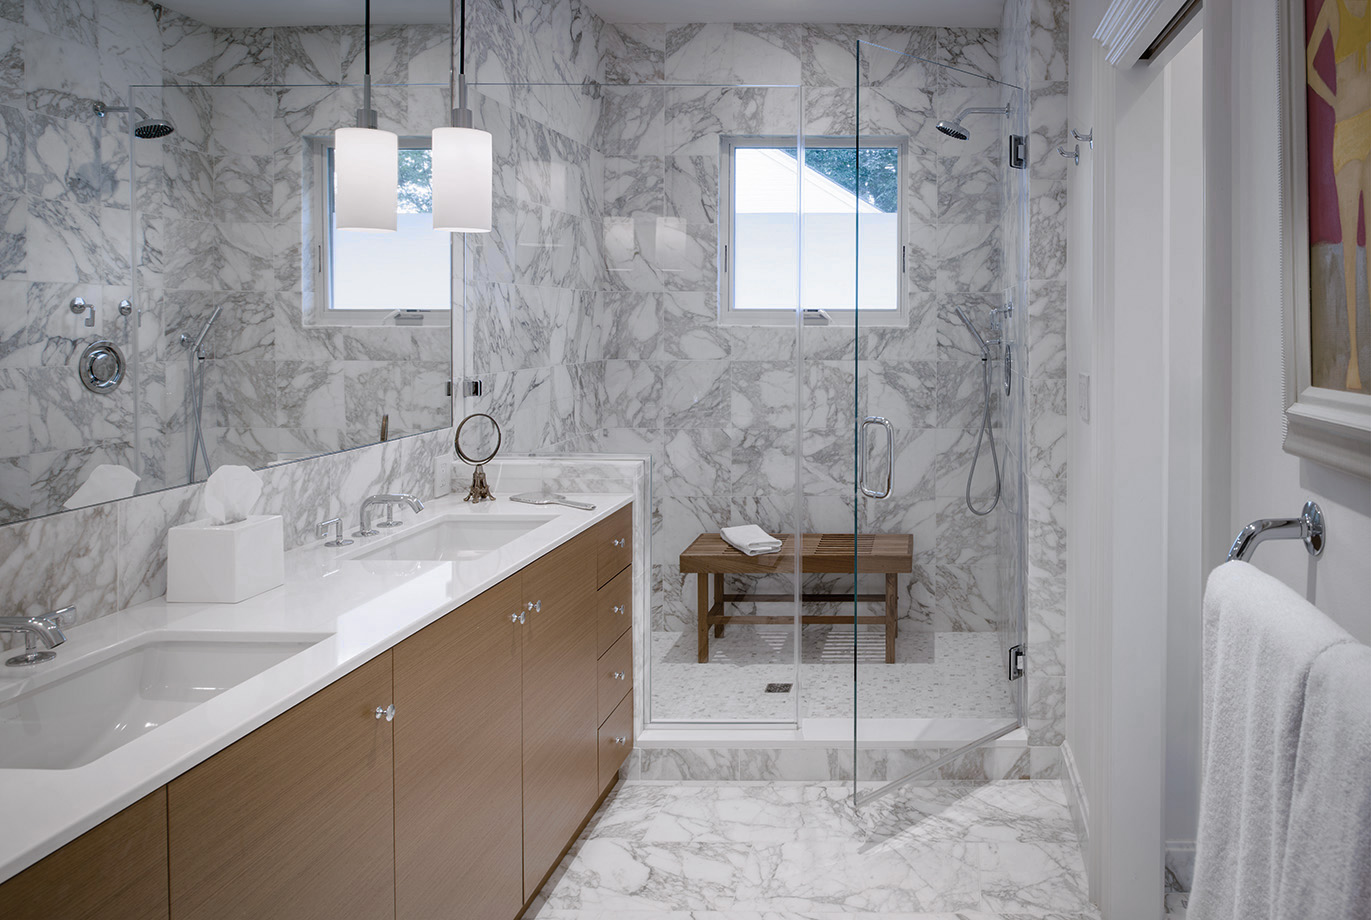 Marble and wood create this sharp and stylish bathroom